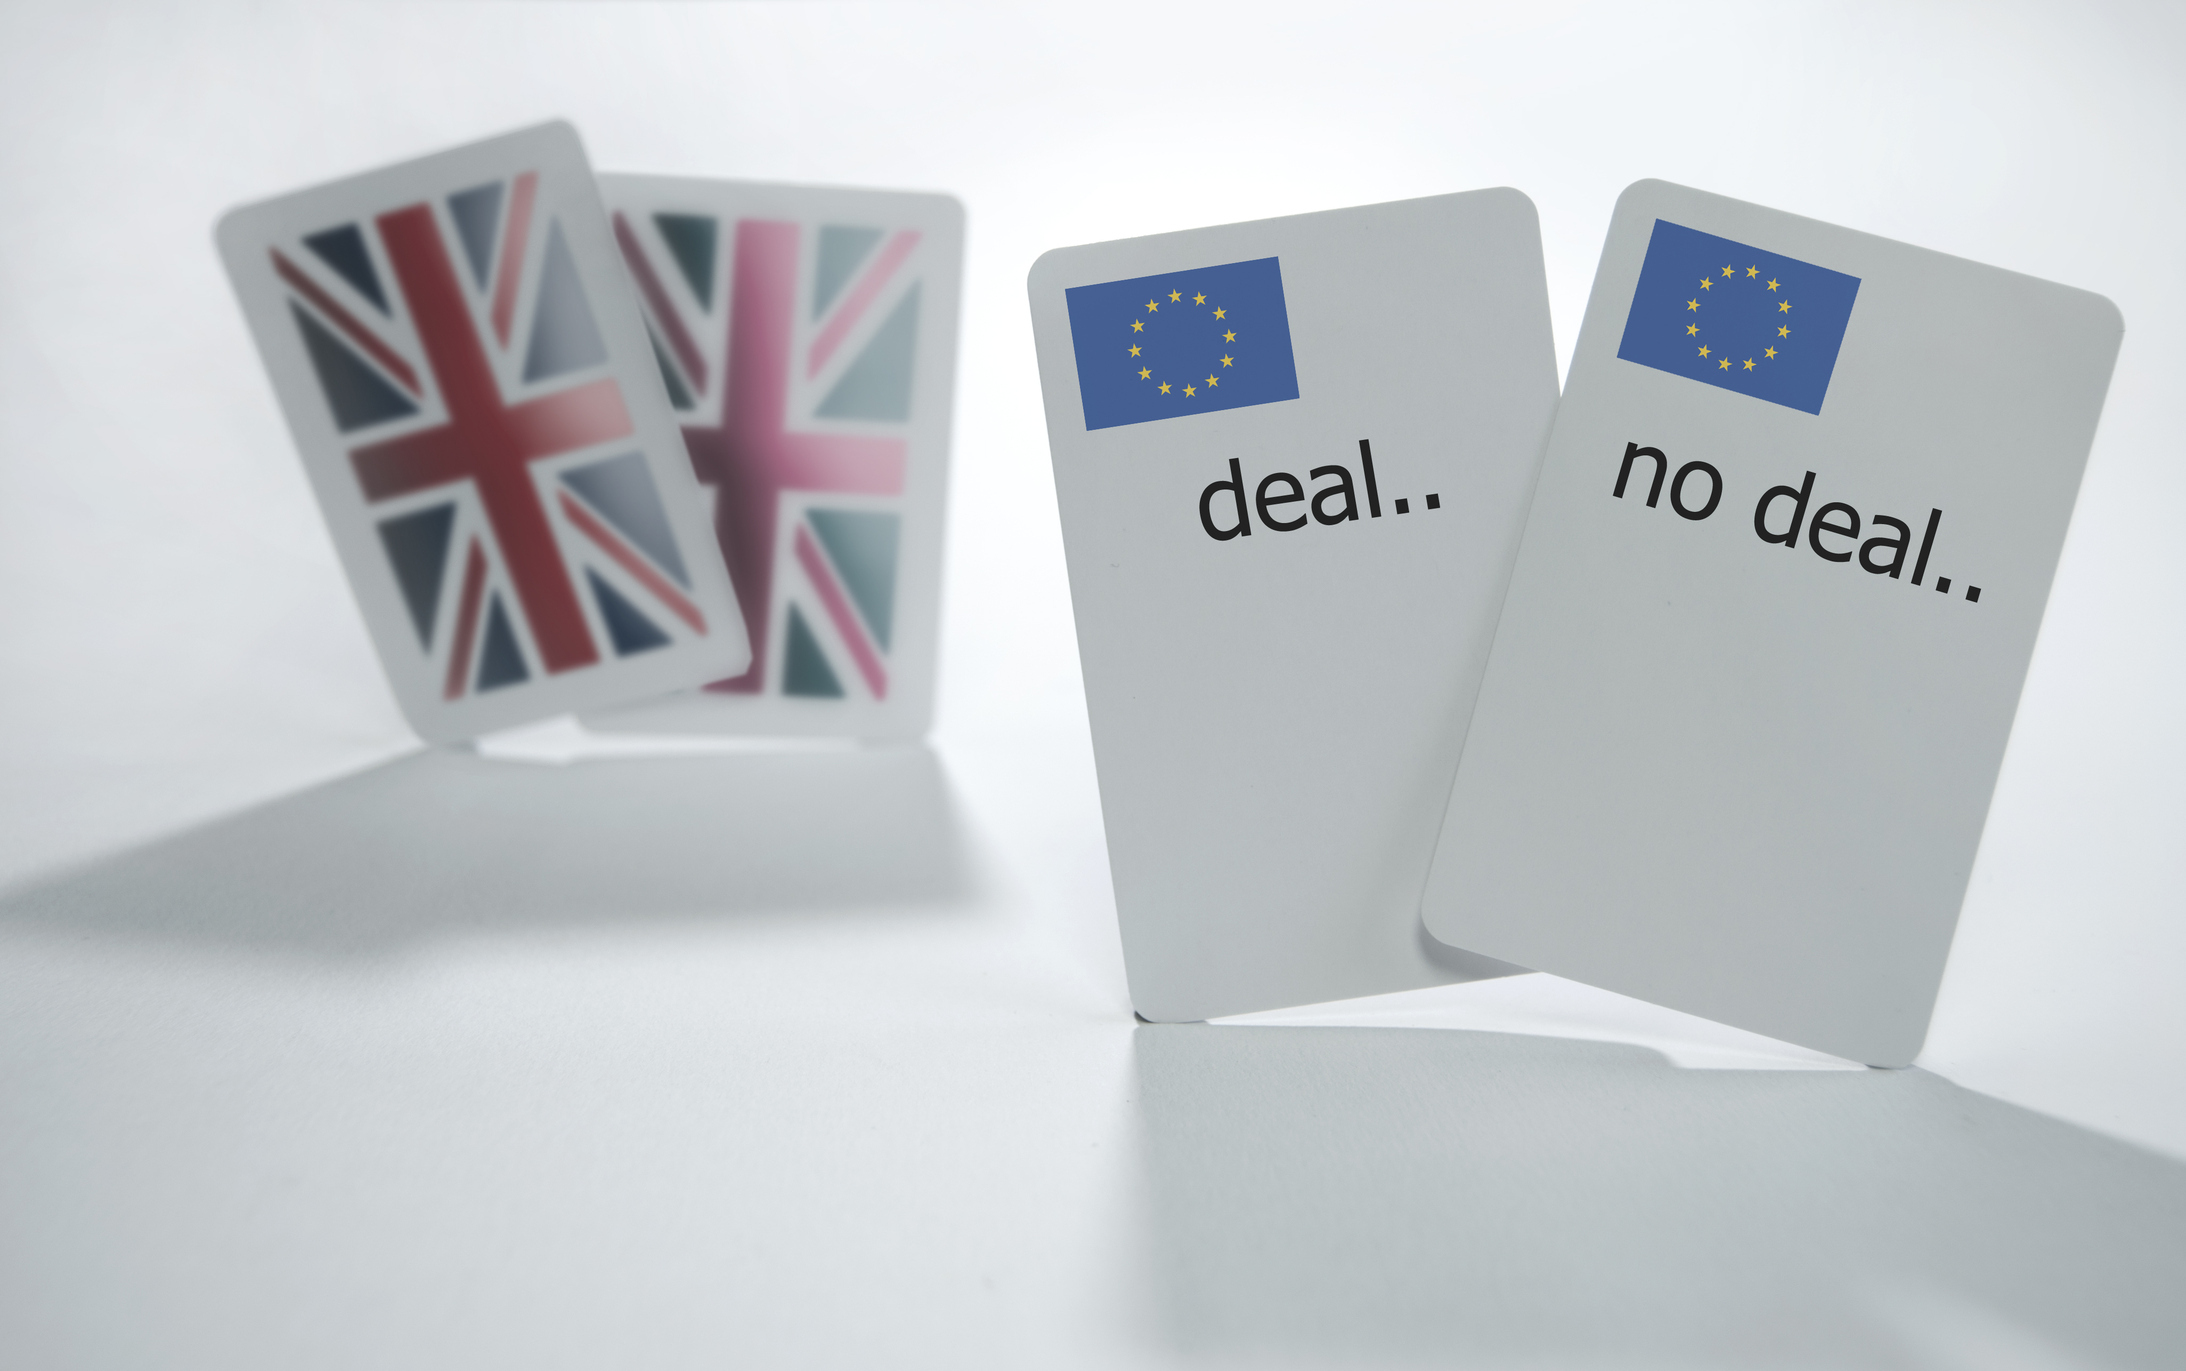 Brexit is not ready for a no deal Brexit the NAO has concluded